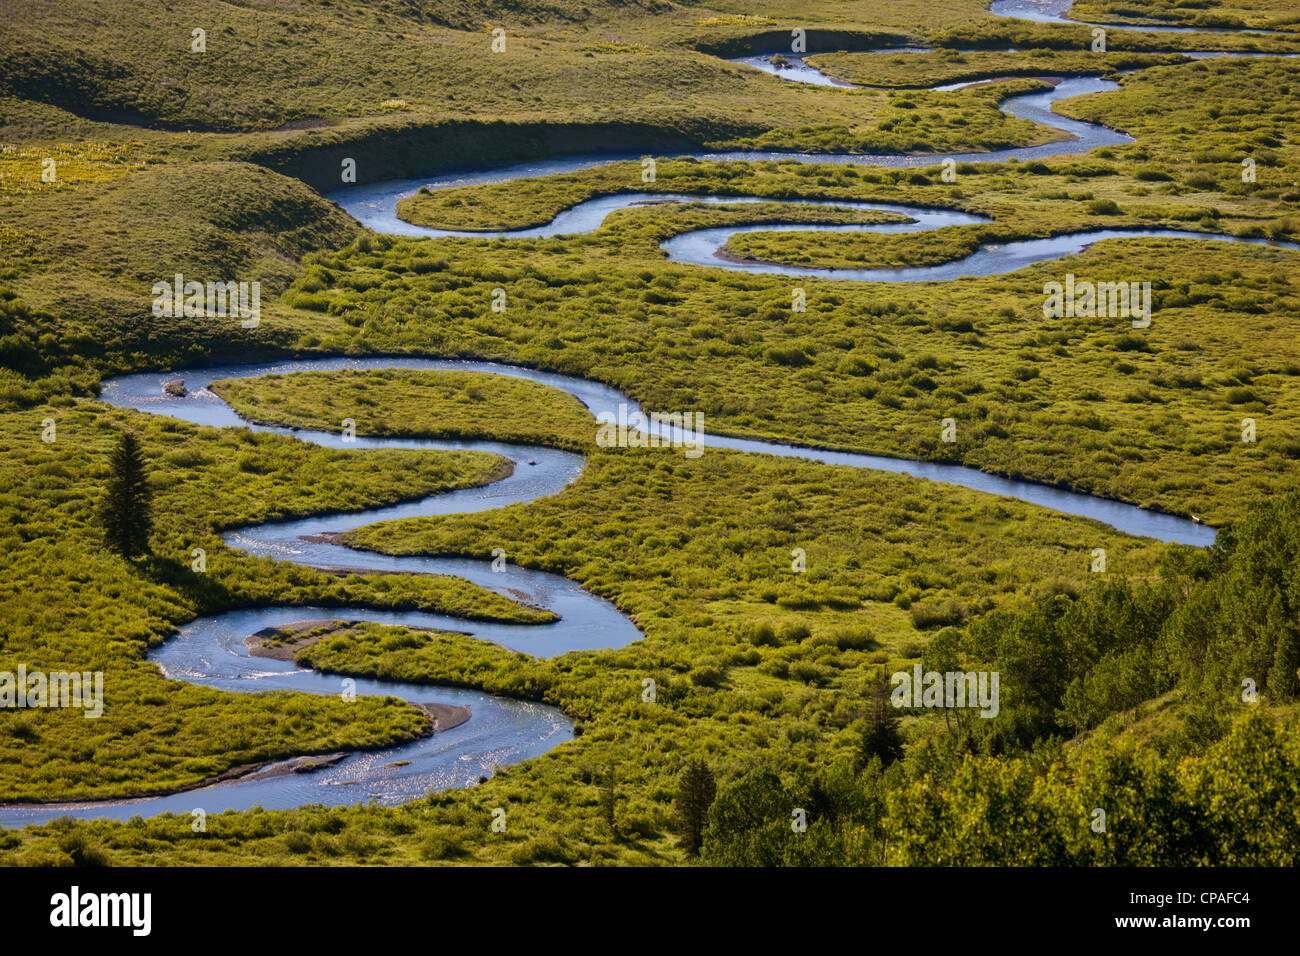 USA, Colorado, Gunnison National Forest. Overview of the upper East River's  meandering pattern - Stock Image